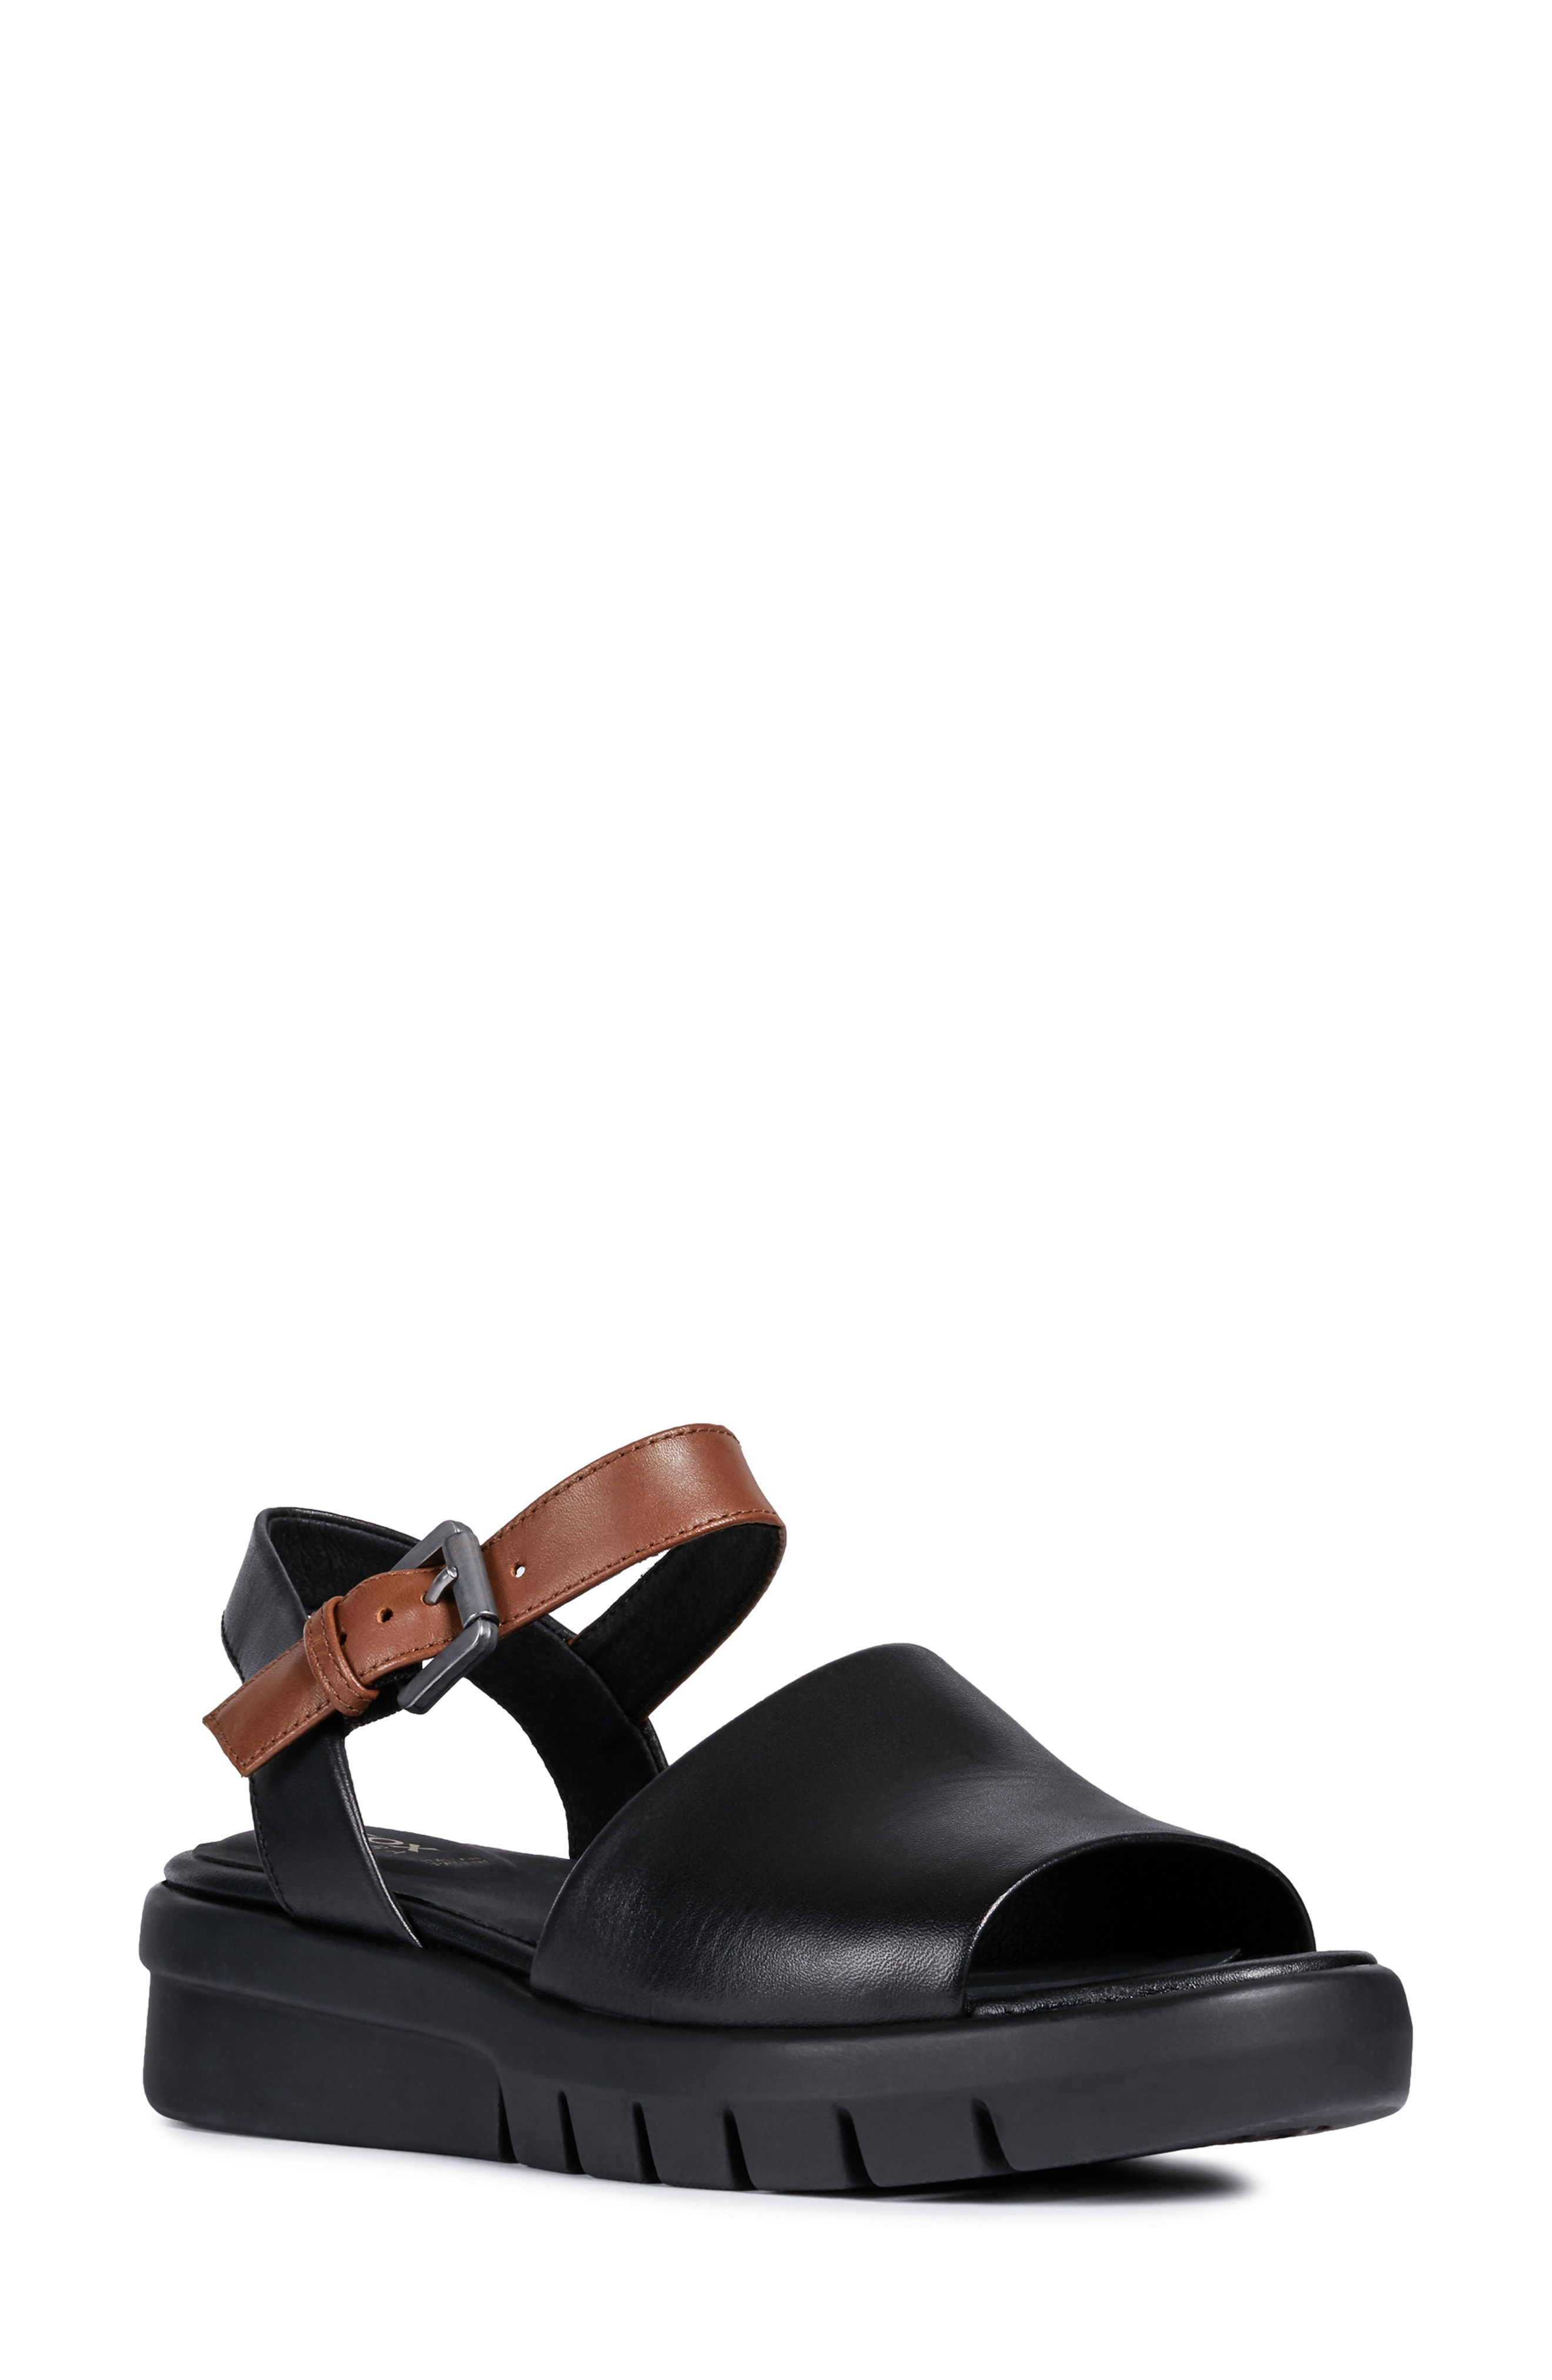 1051df20ee1 A bold platform sandal is made with a signature Respira sole for  ventilation and a waterproof membrane that keeps underfoot moisture from  seeping in.